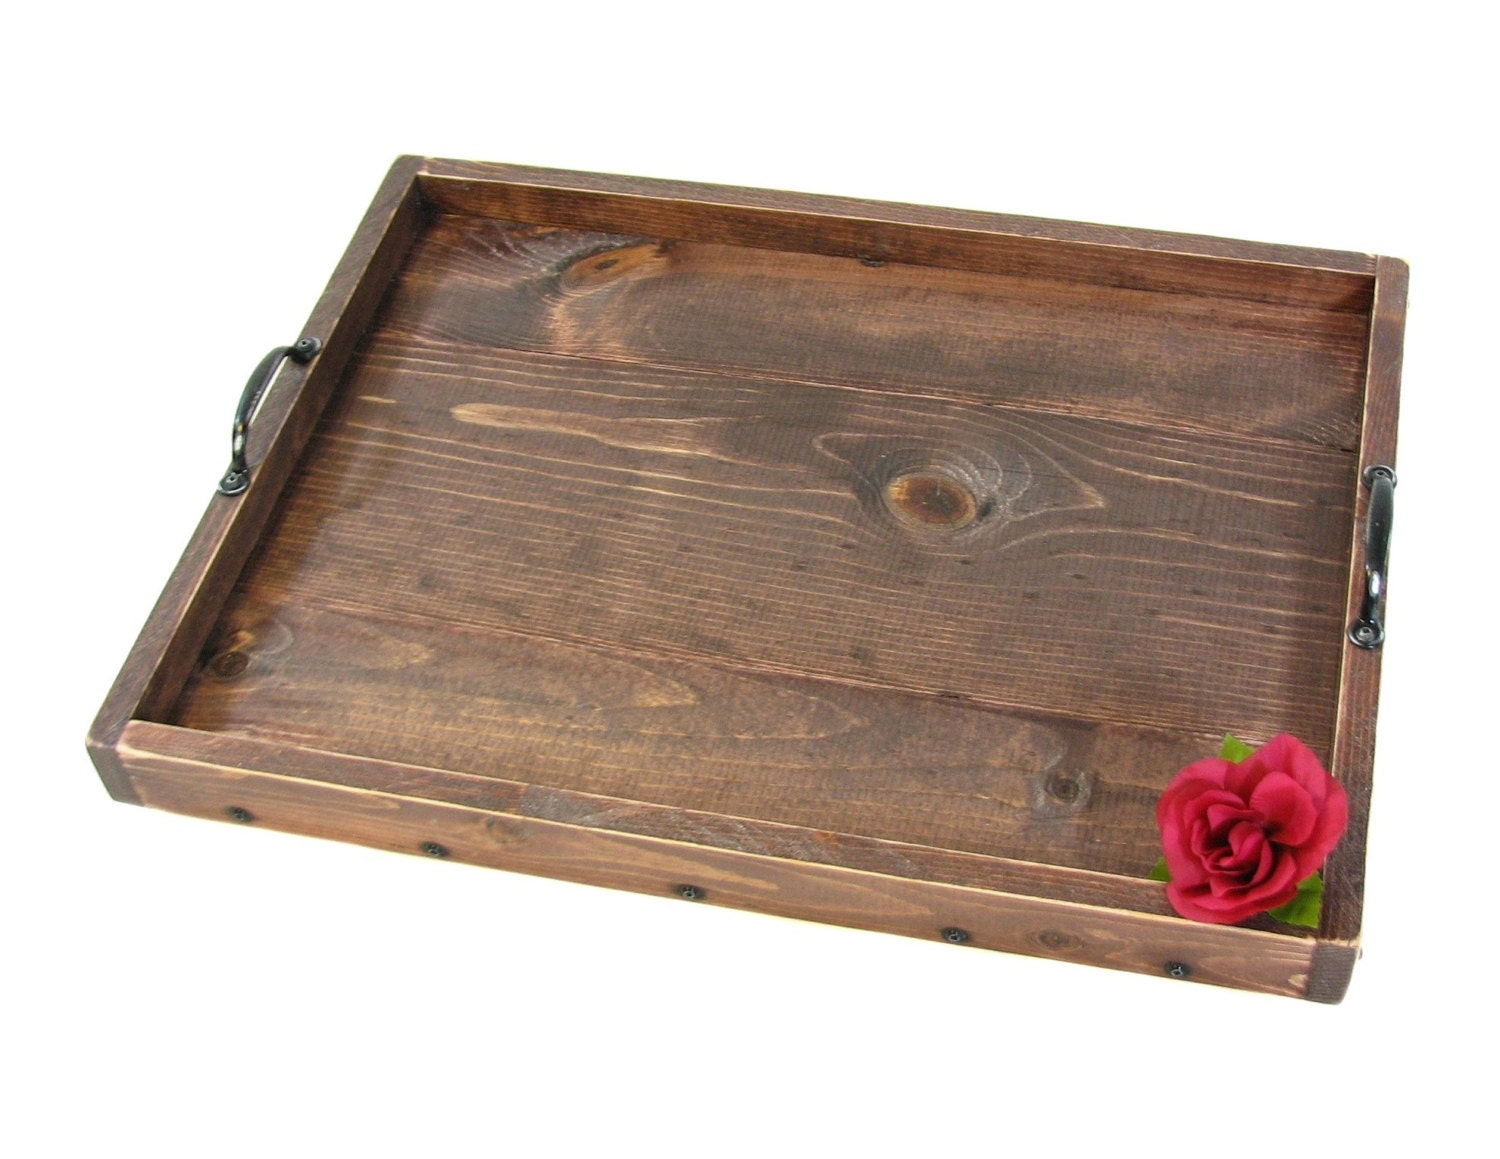 Ottoman Tray Wooden Serving Tray Decorative By Bridgewoodplace